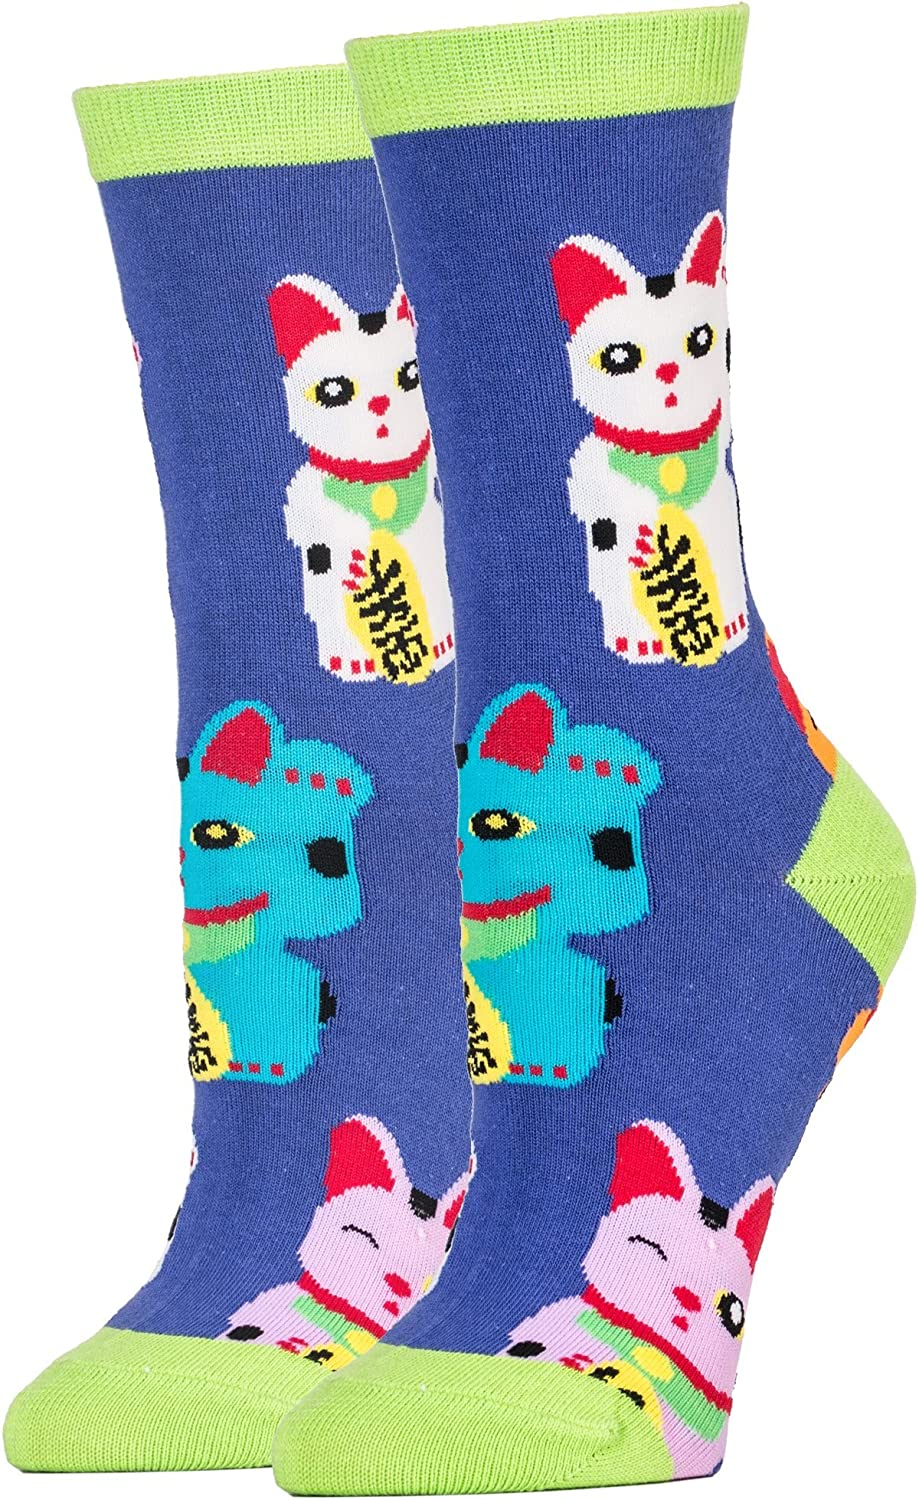 All items in the store Women's Novelty Crew Socks for Cat Oooh Yeah Atlanta Mall Lovers Crazy Funny